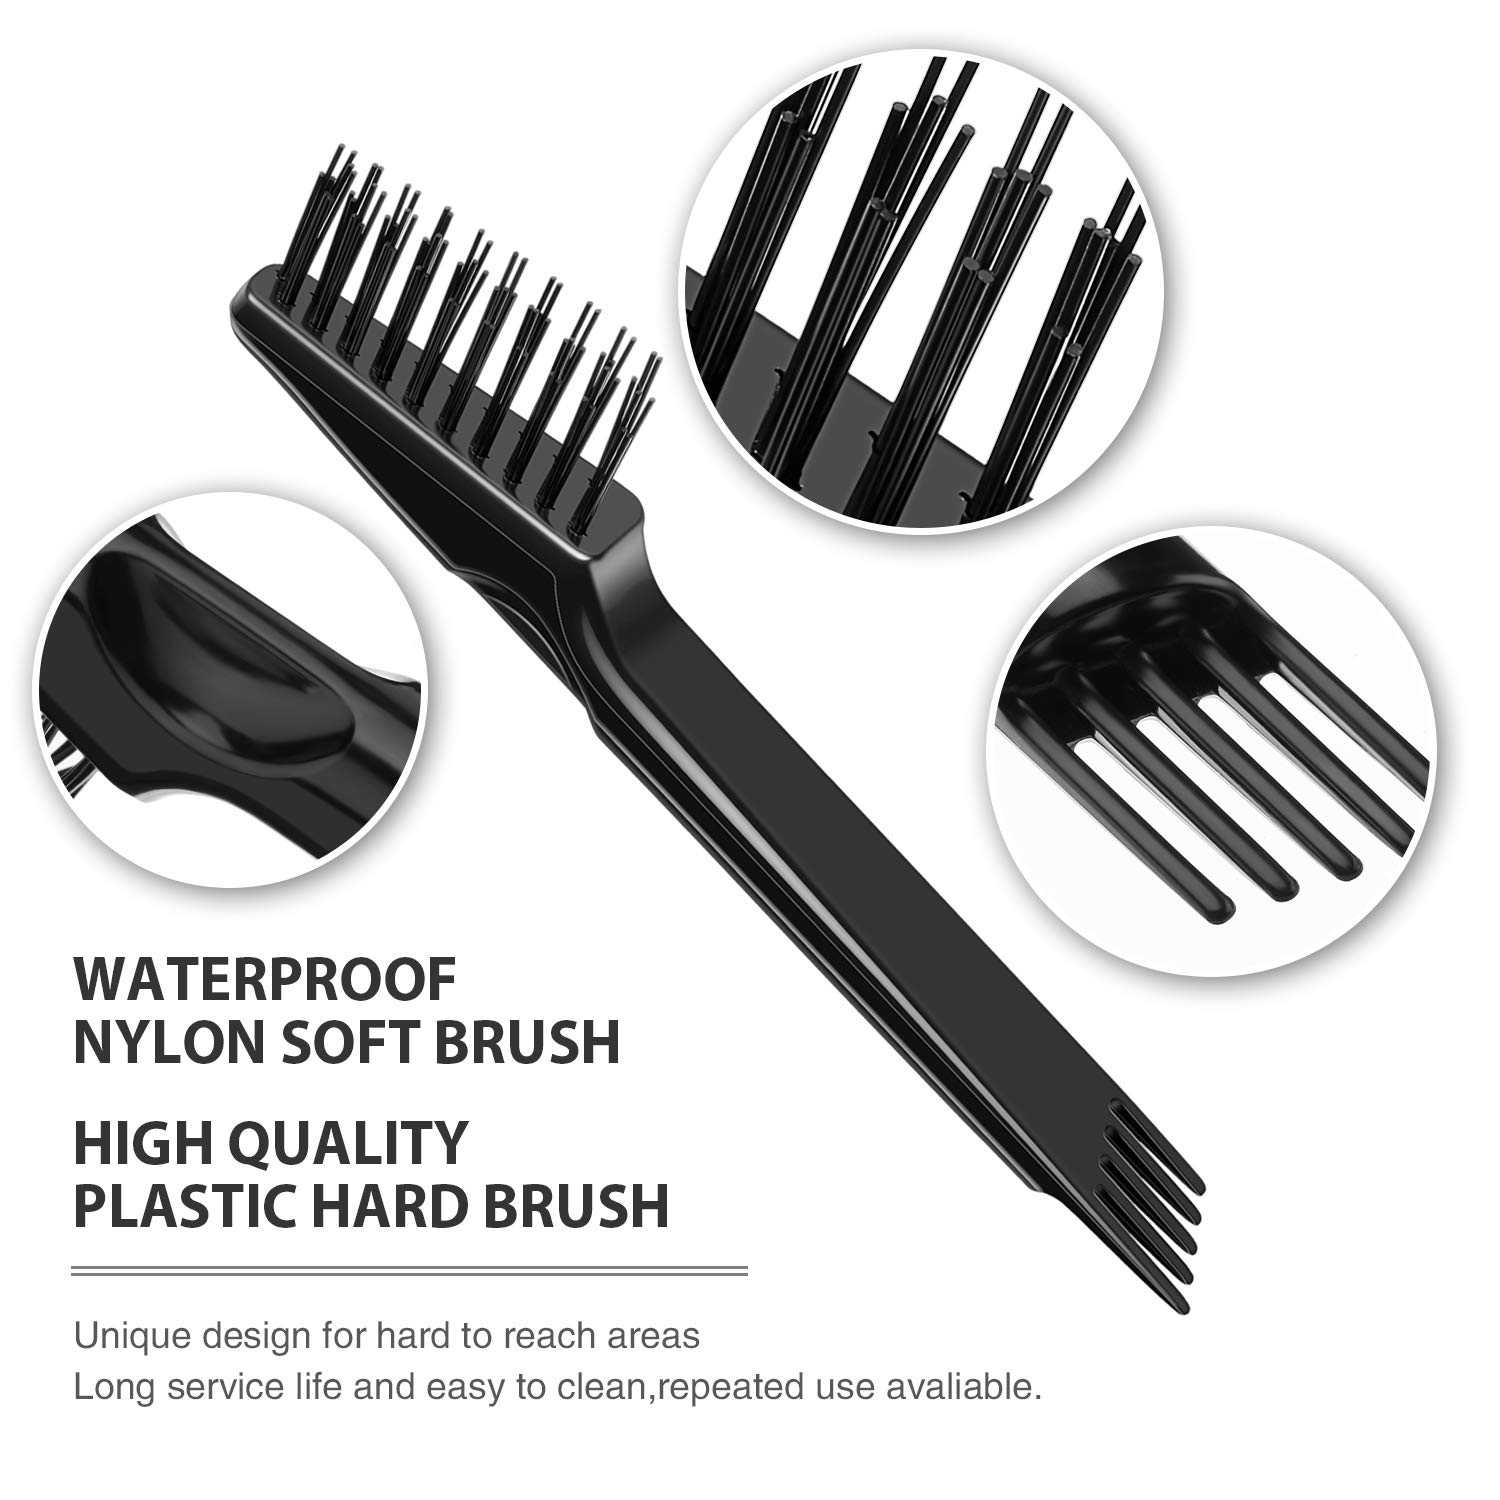 NEW 629268 Paint Brush Cleaning Comb 175mm 7 Easy To Clean Corrosion Resist GIF